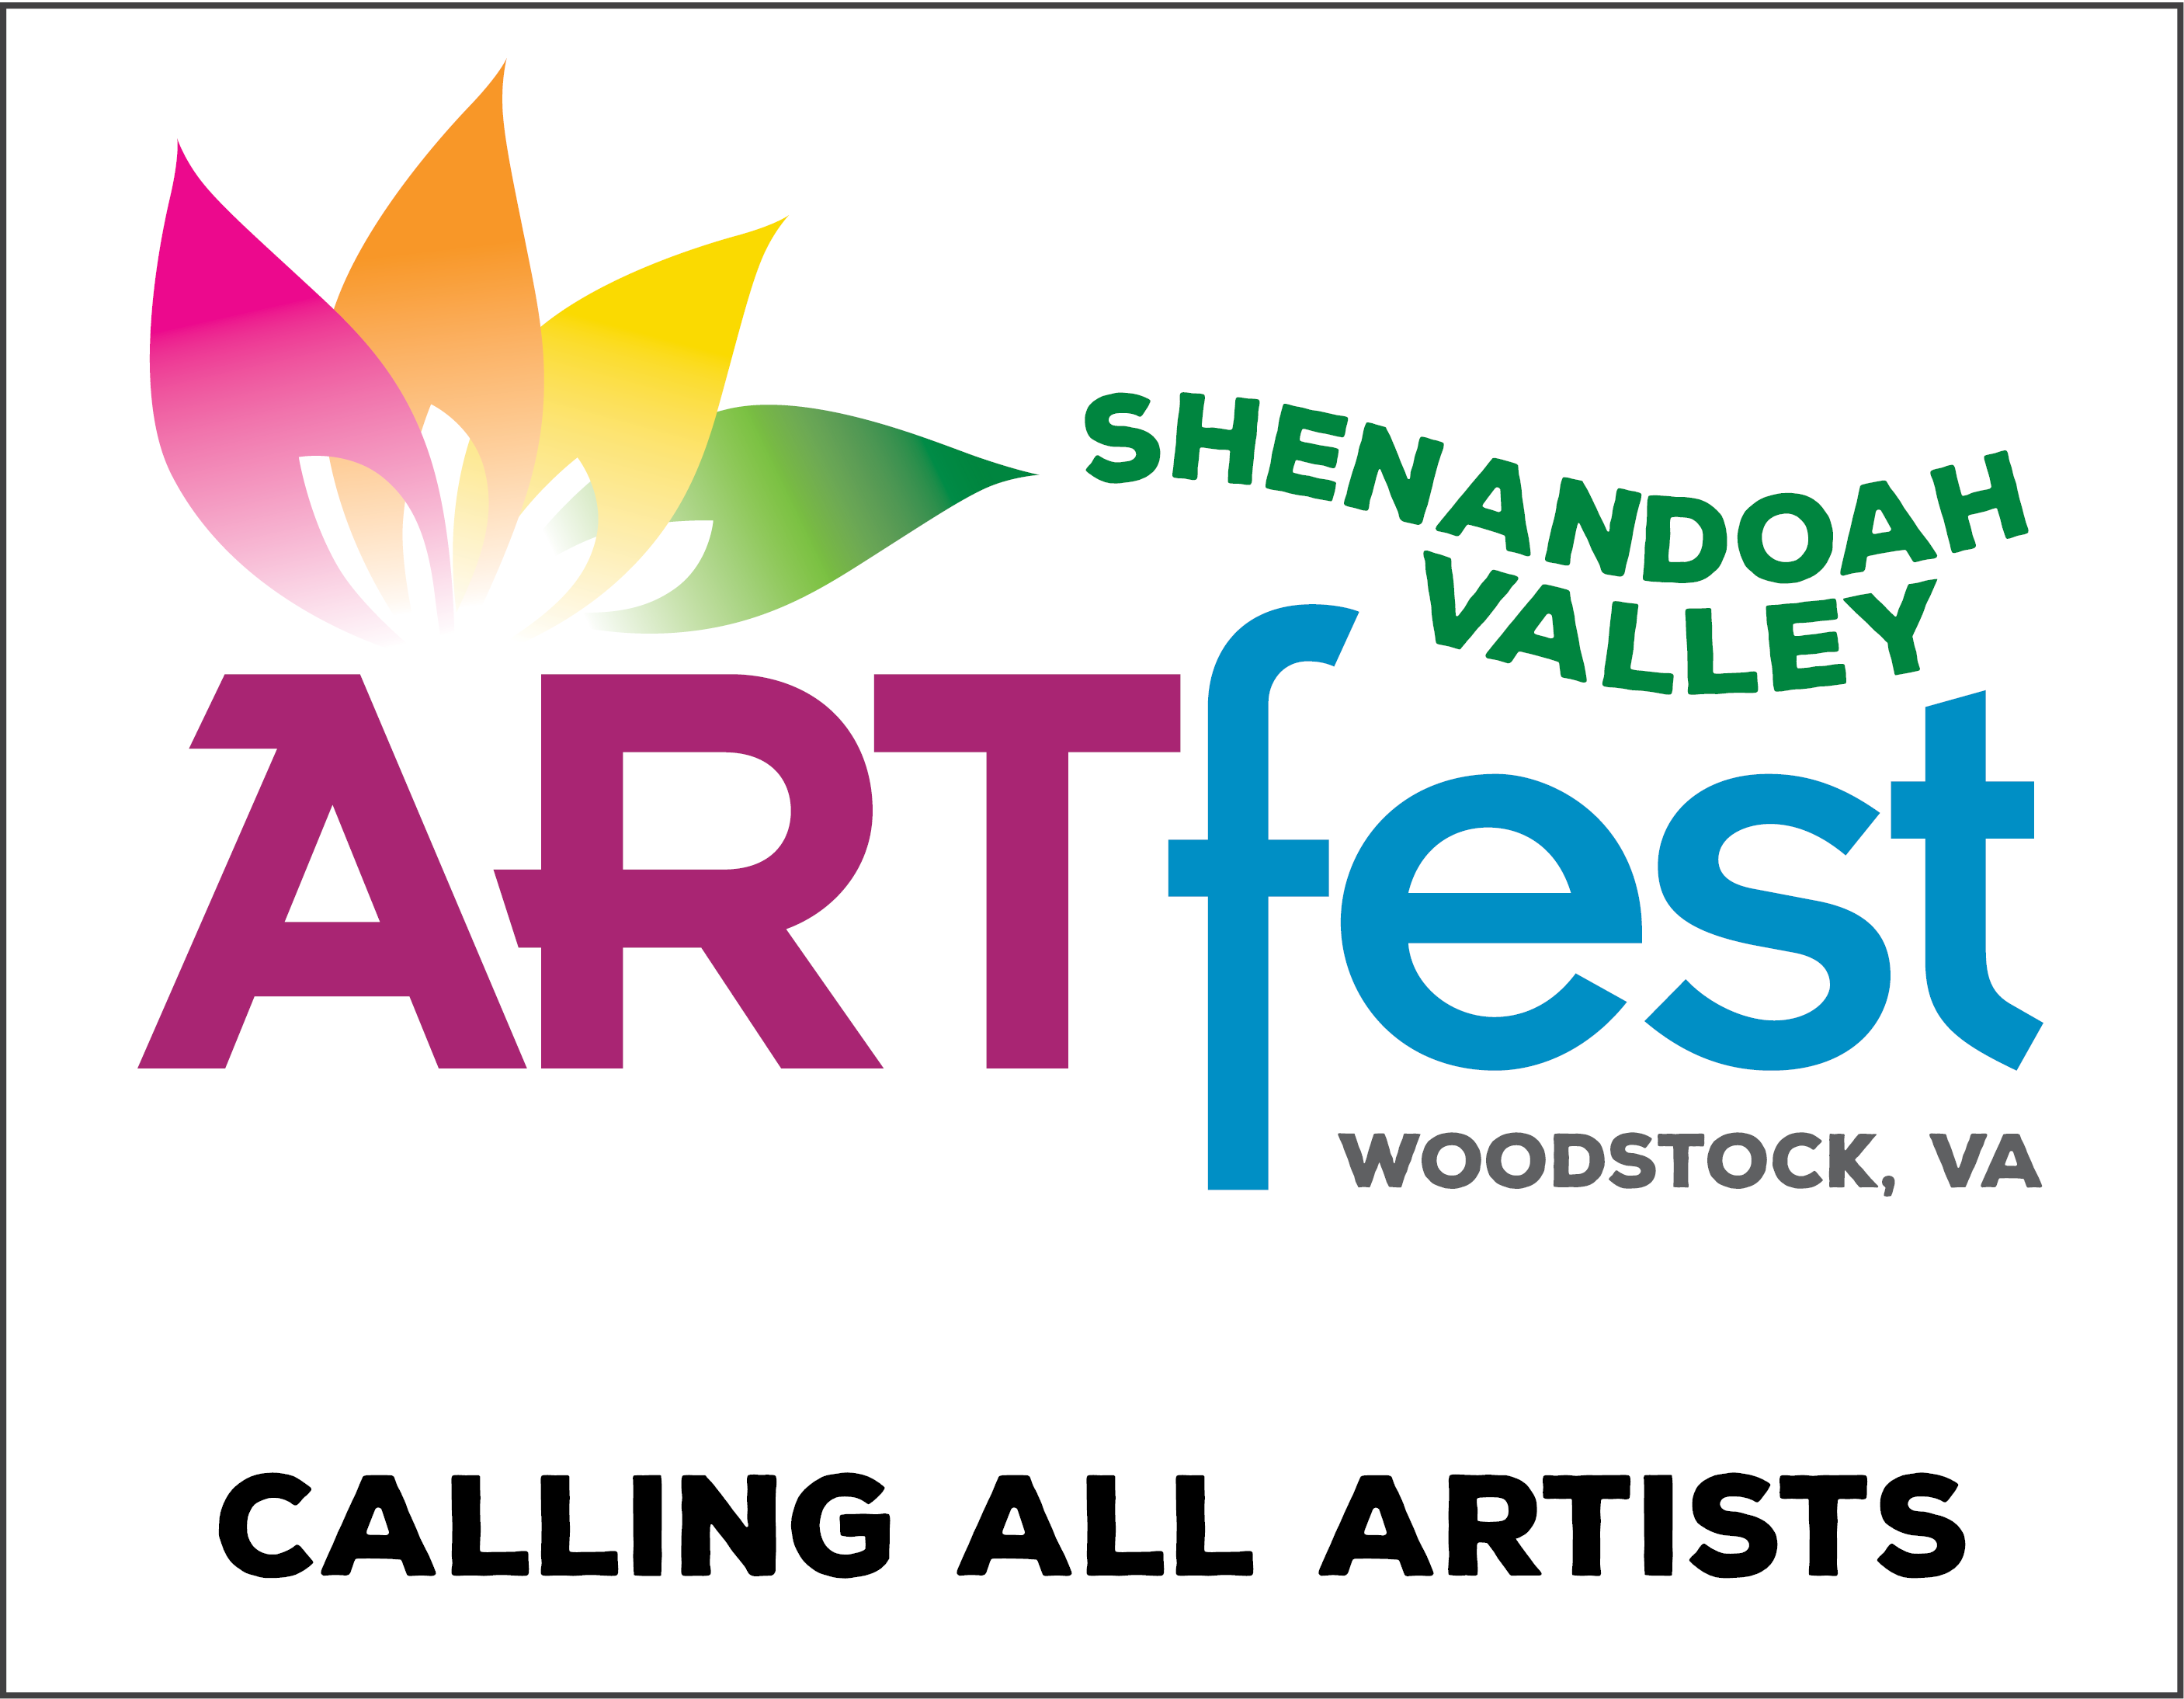 ArtFest 2020 is seeking artists to come and sell their work on Saturday, June 27, 2020